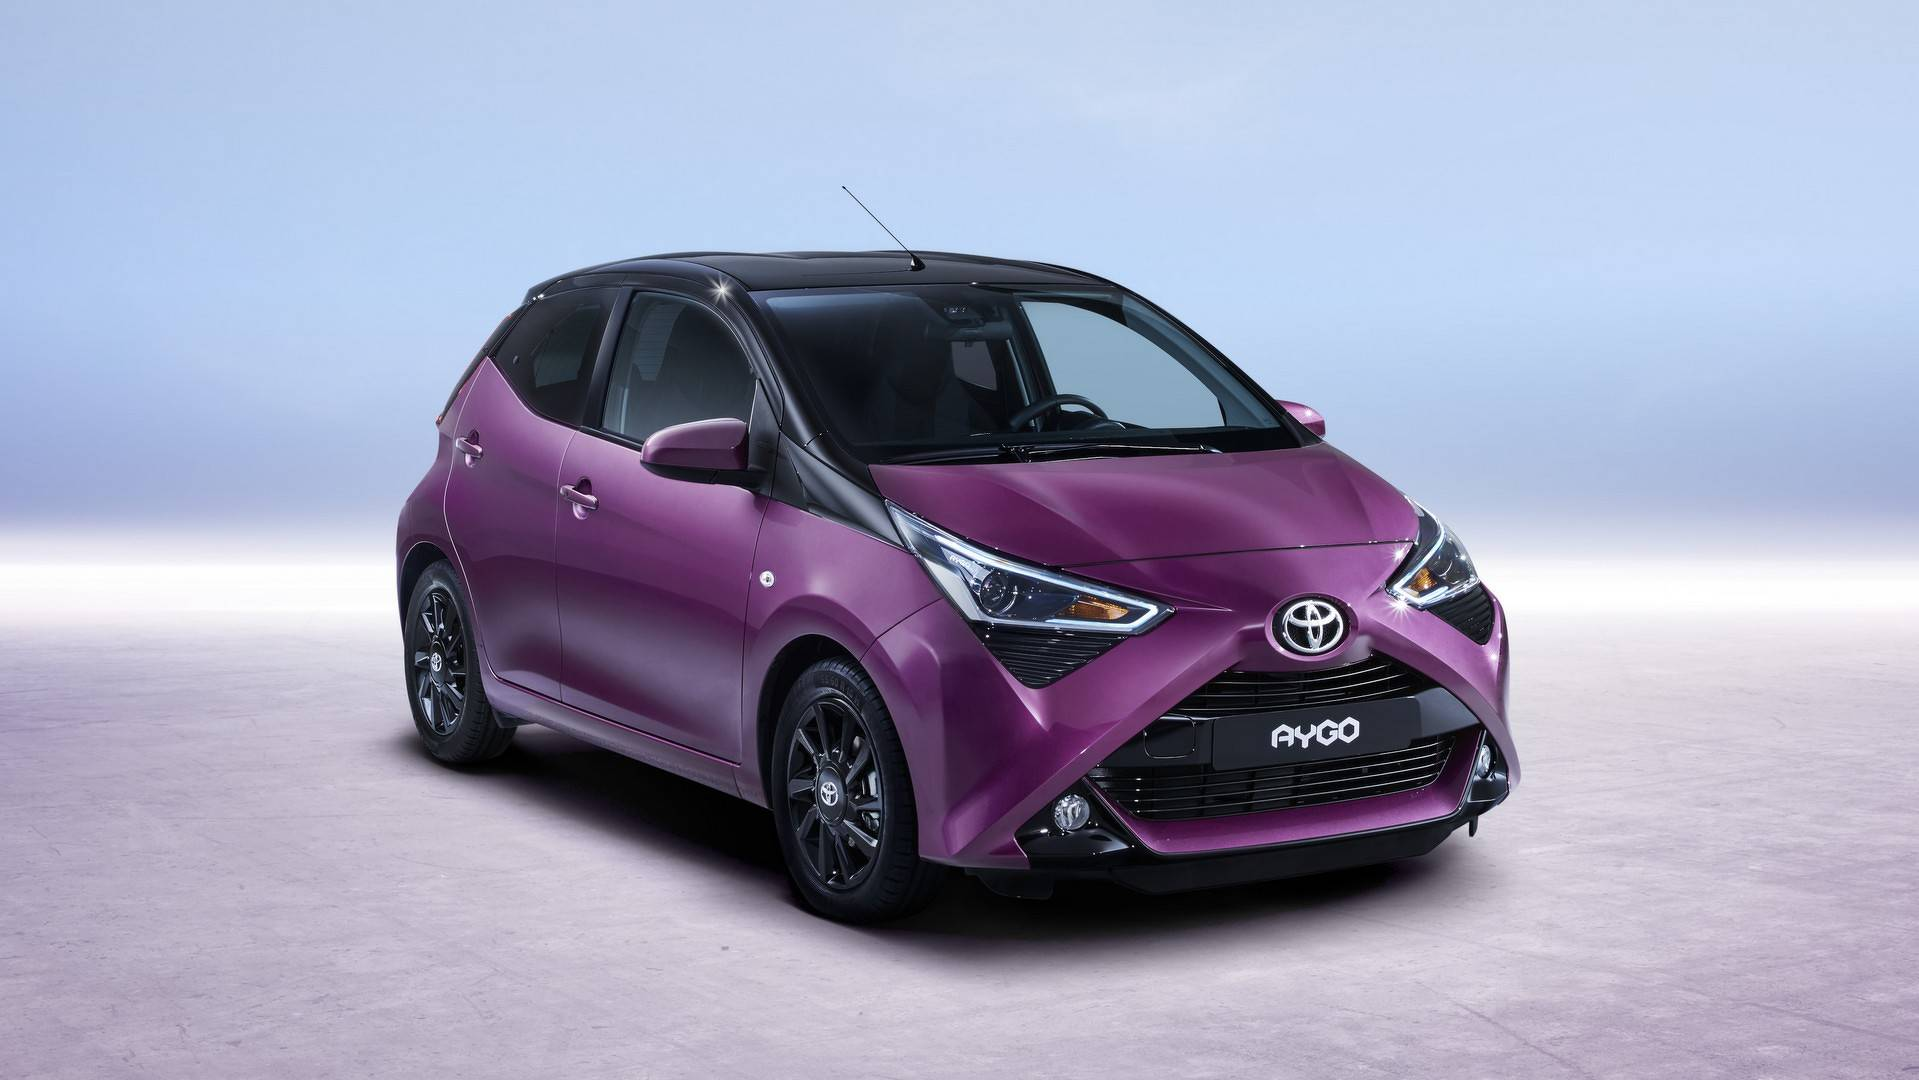 The AYGO 2018